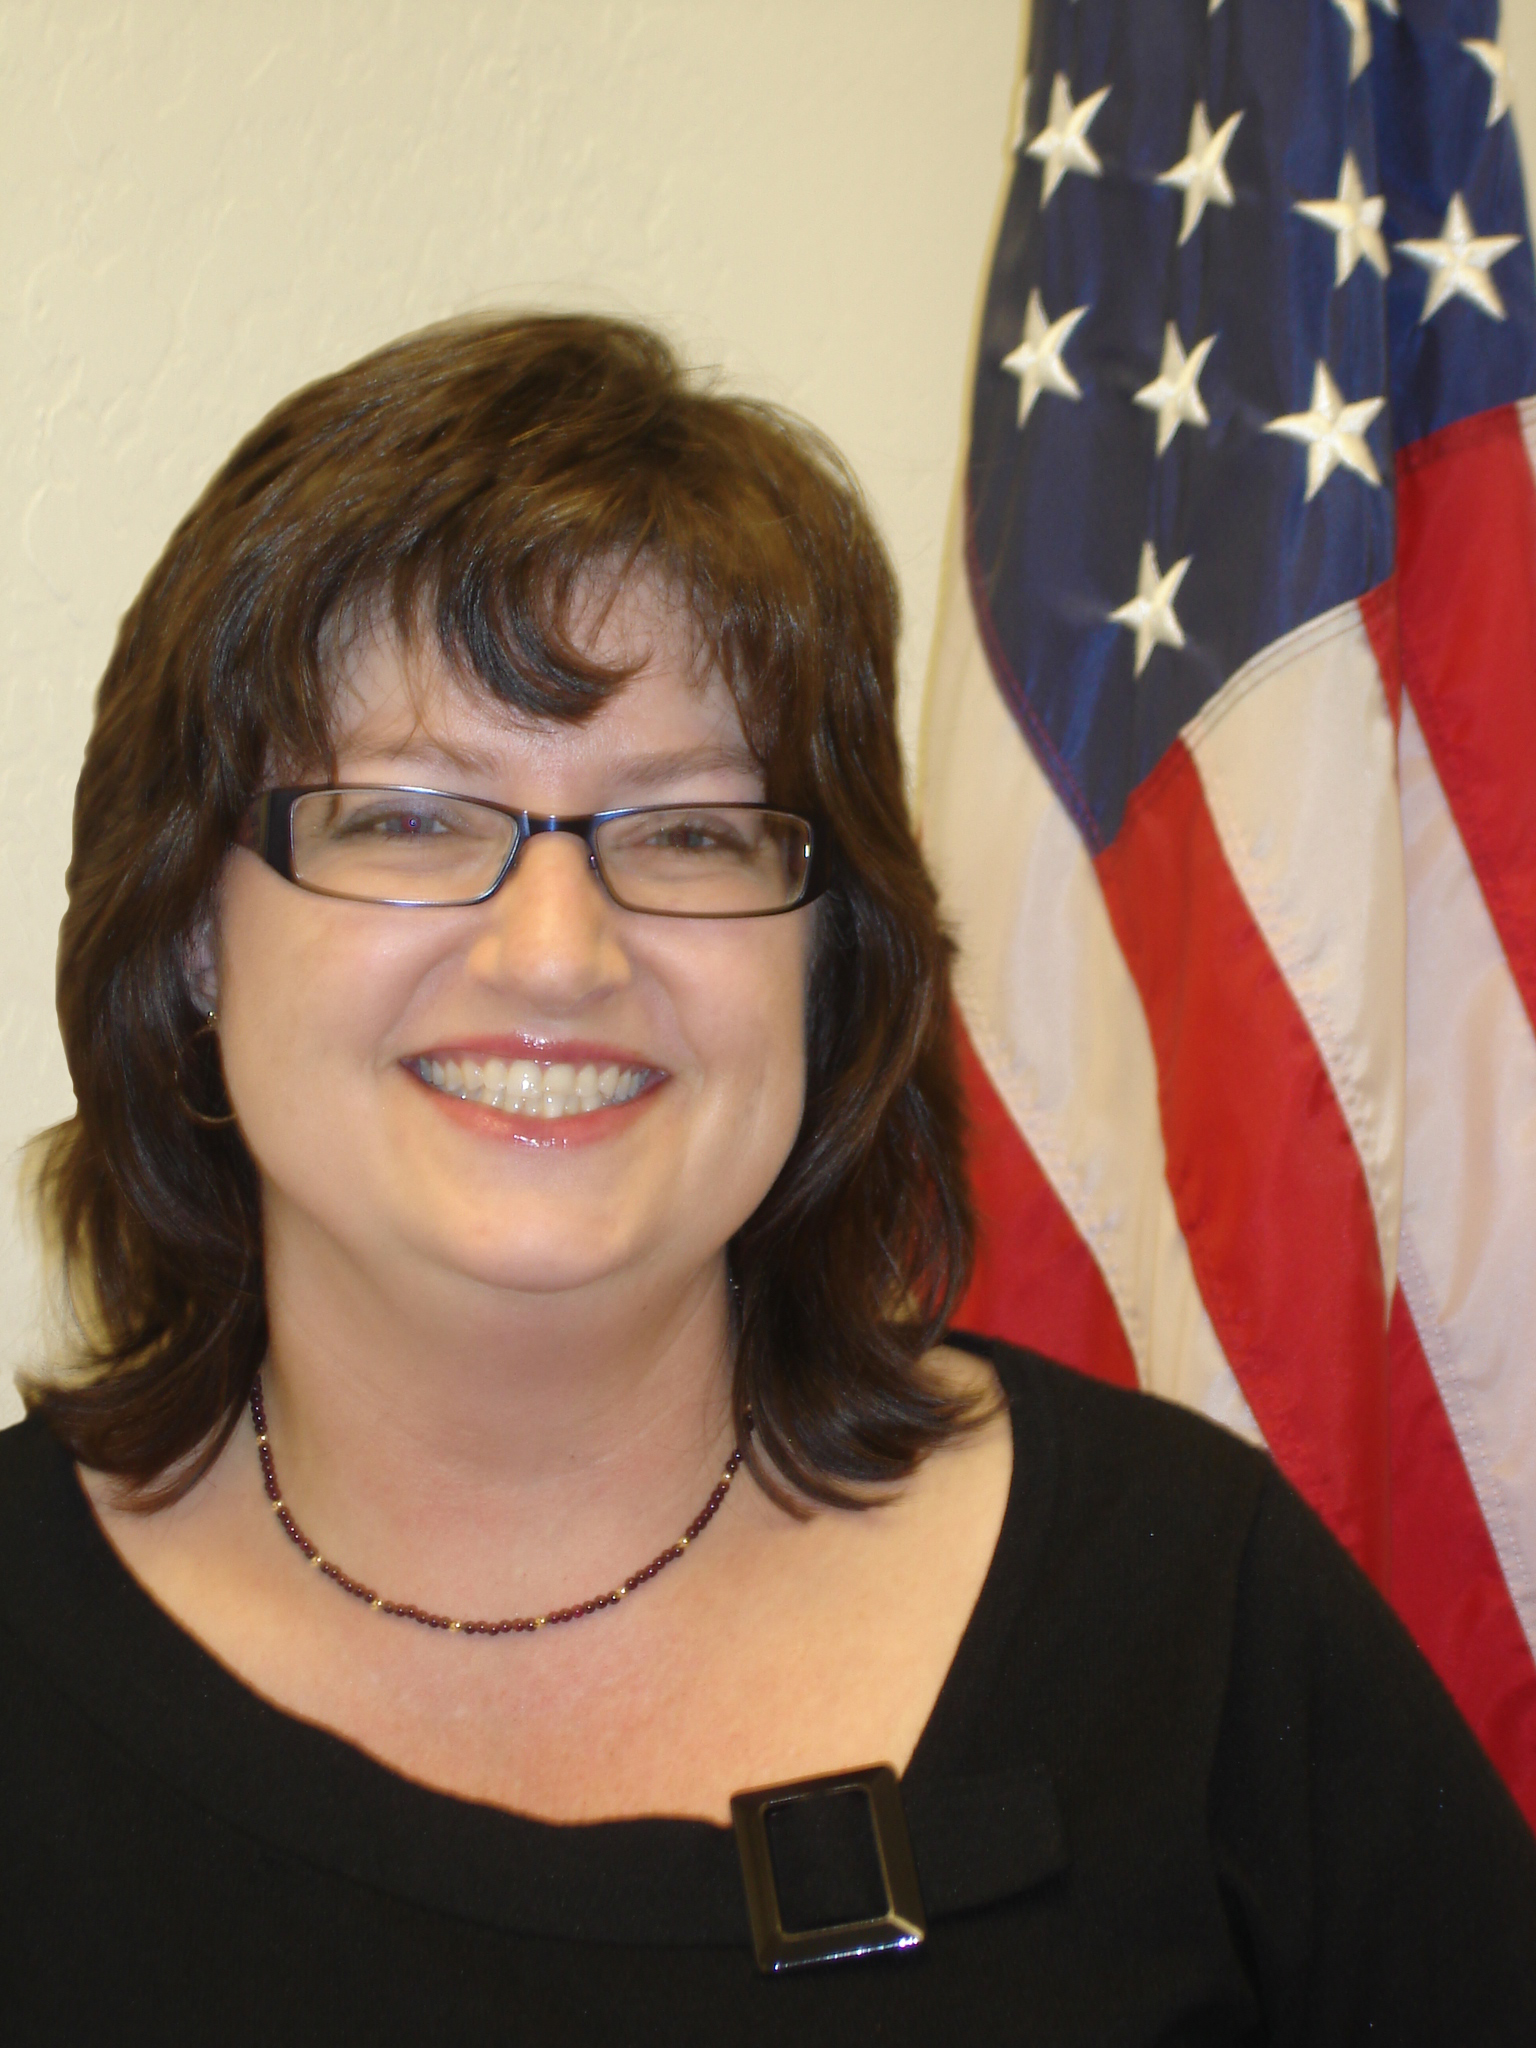 Cathy Darling Allen, County Clerk